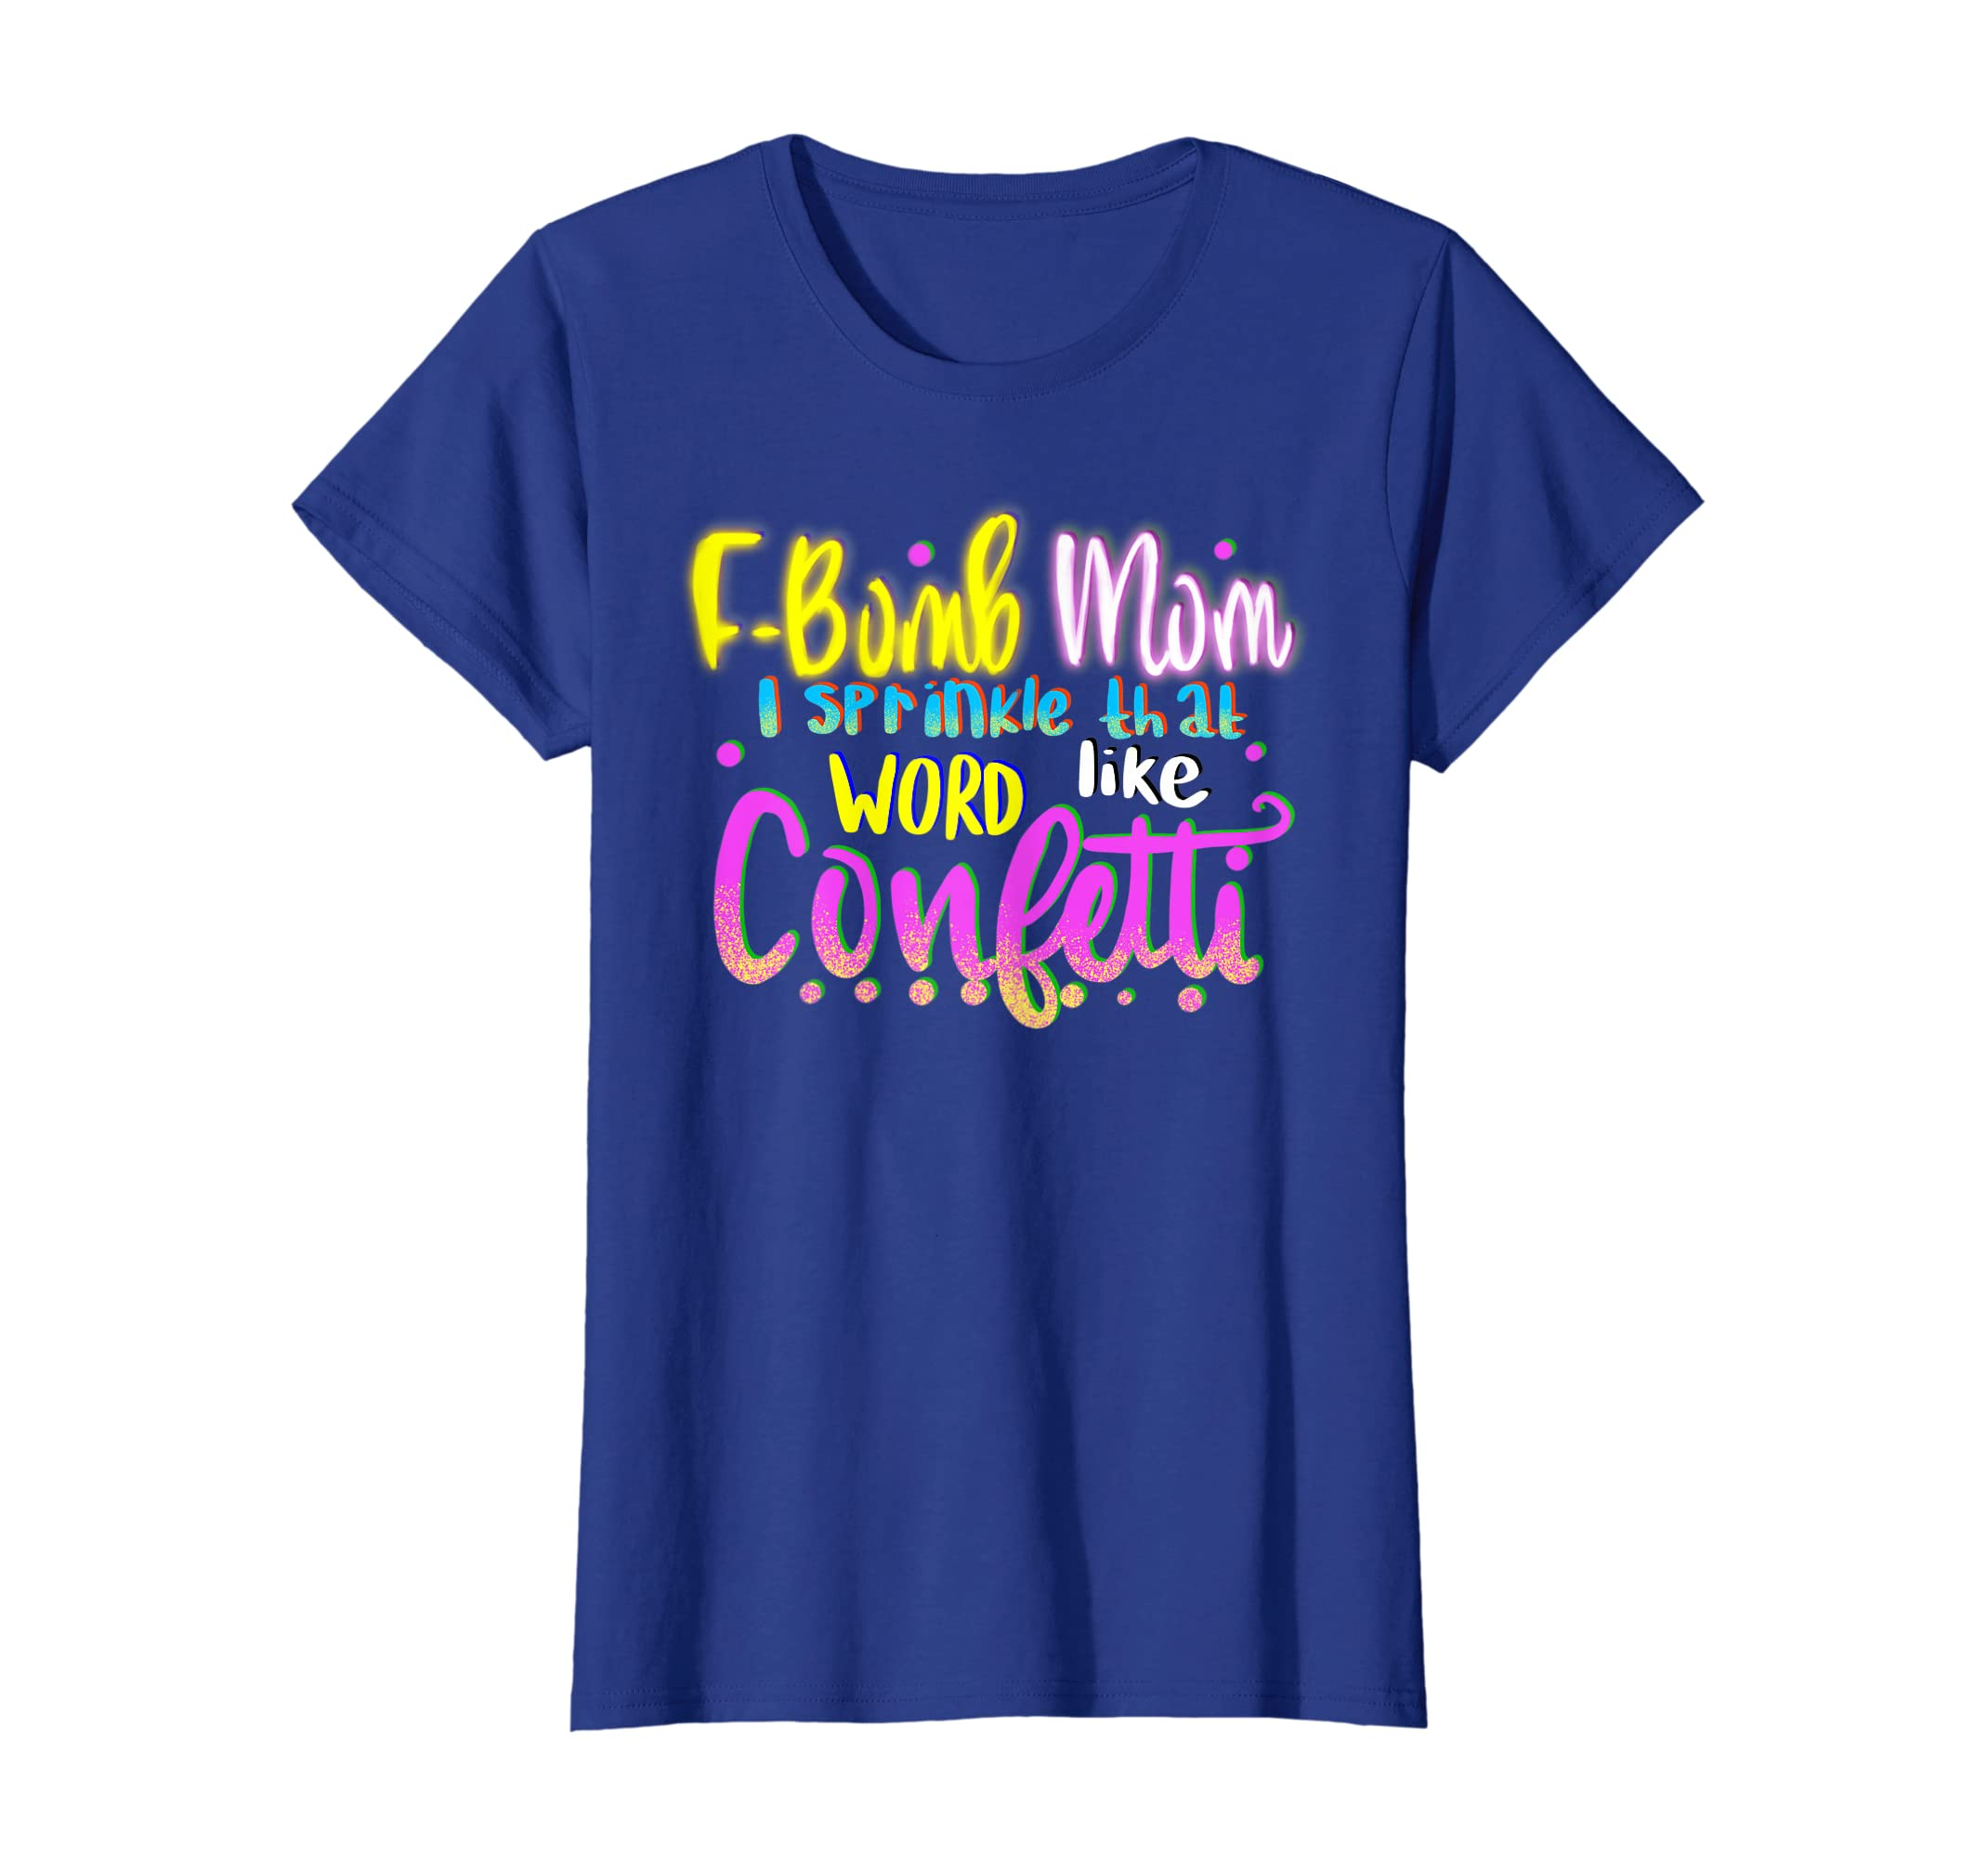 752021a37 Amazon.com: F Bomb Mom I Sprinkle That Word Like Confetti T-shirt: Clothing